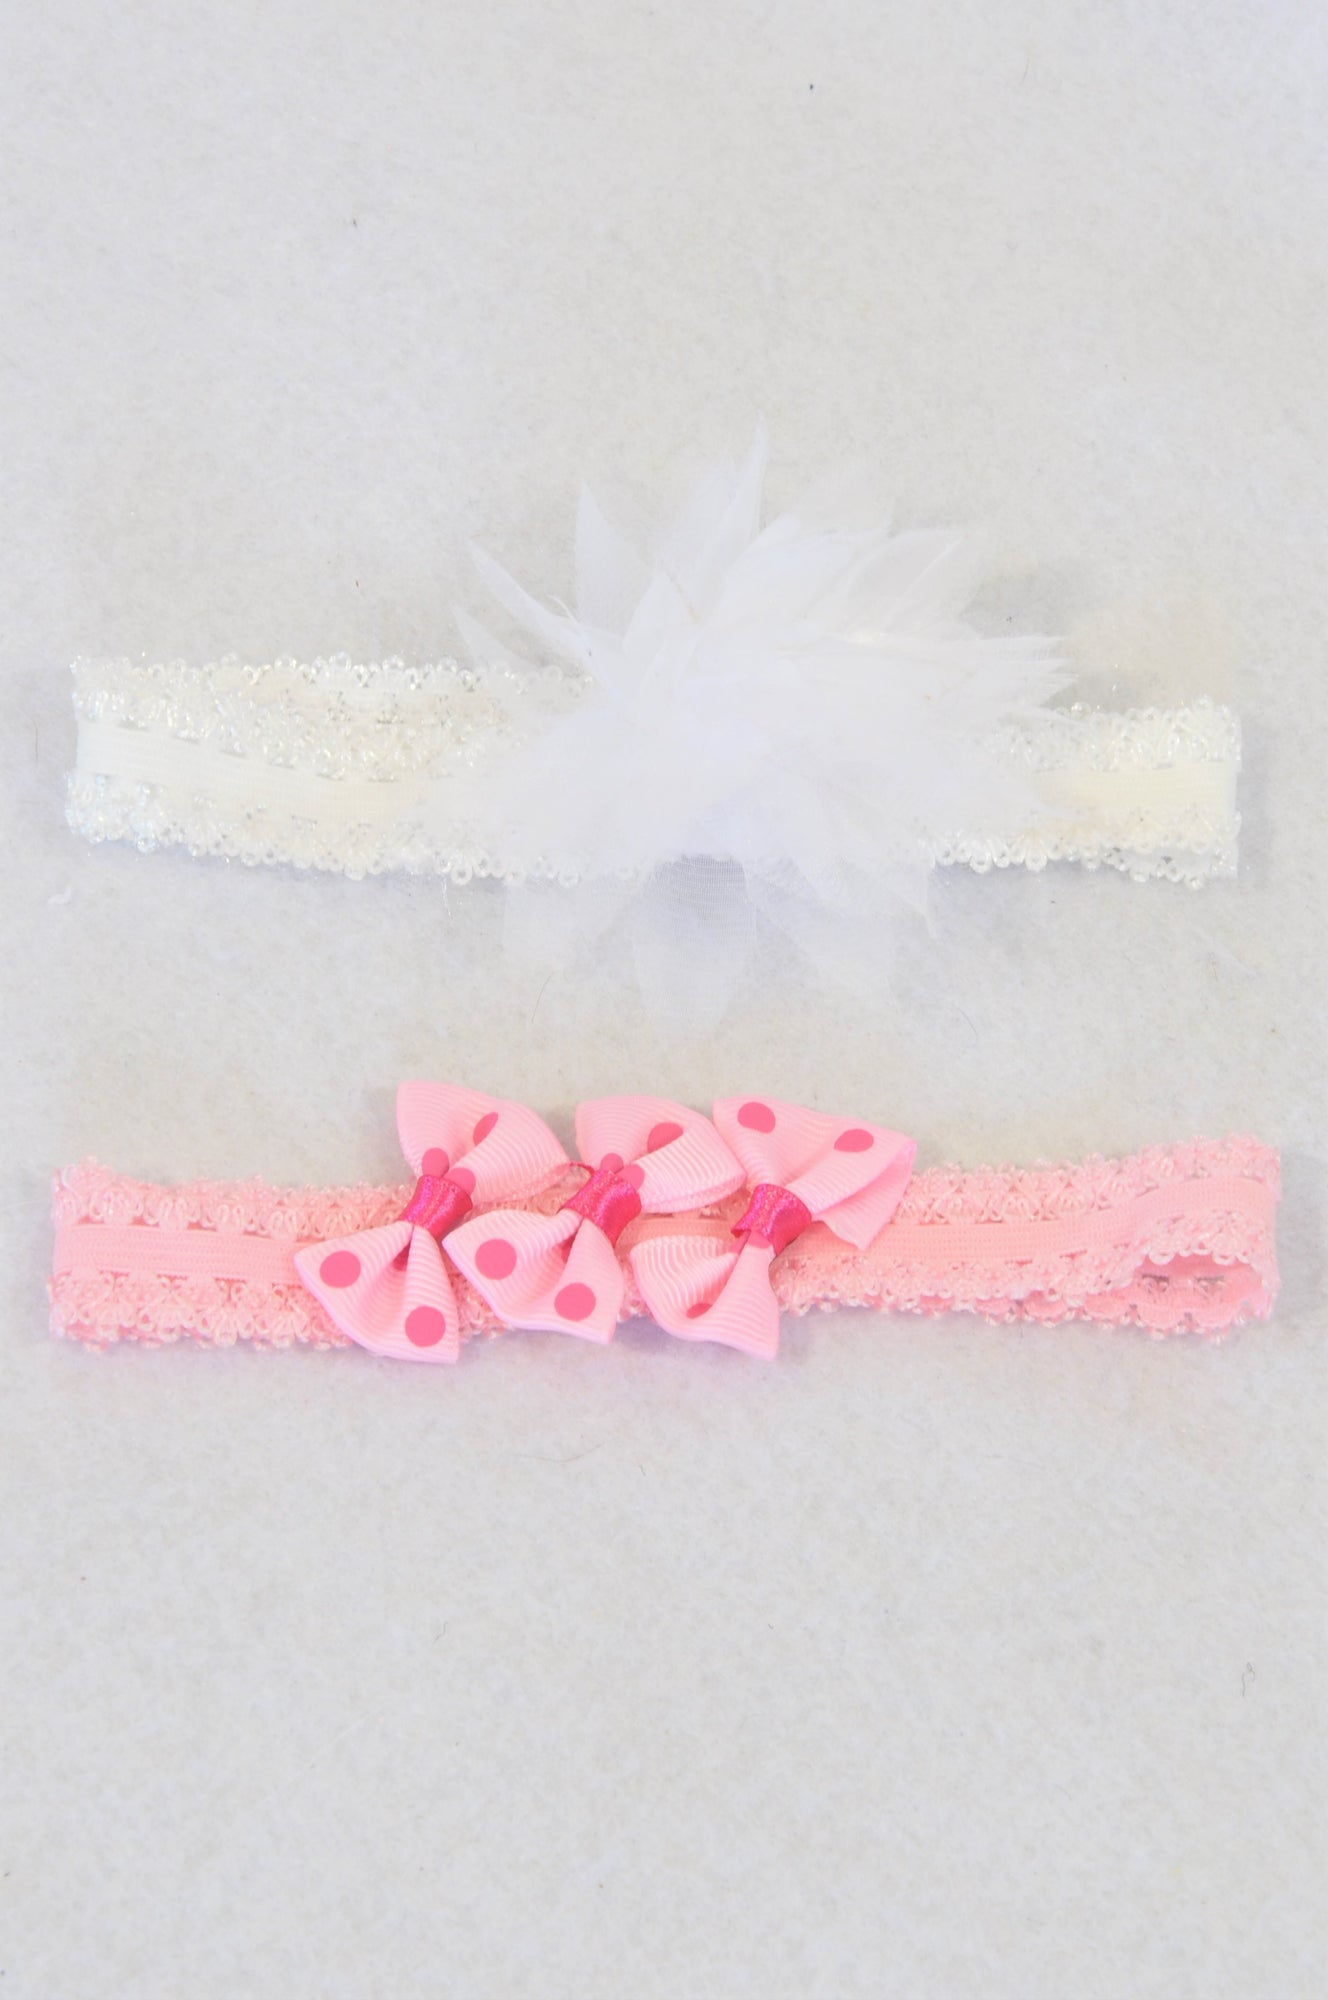 Unbranded 2 Pack White and Pink Stretchy Lace Headbands Girls N-B to 1 year